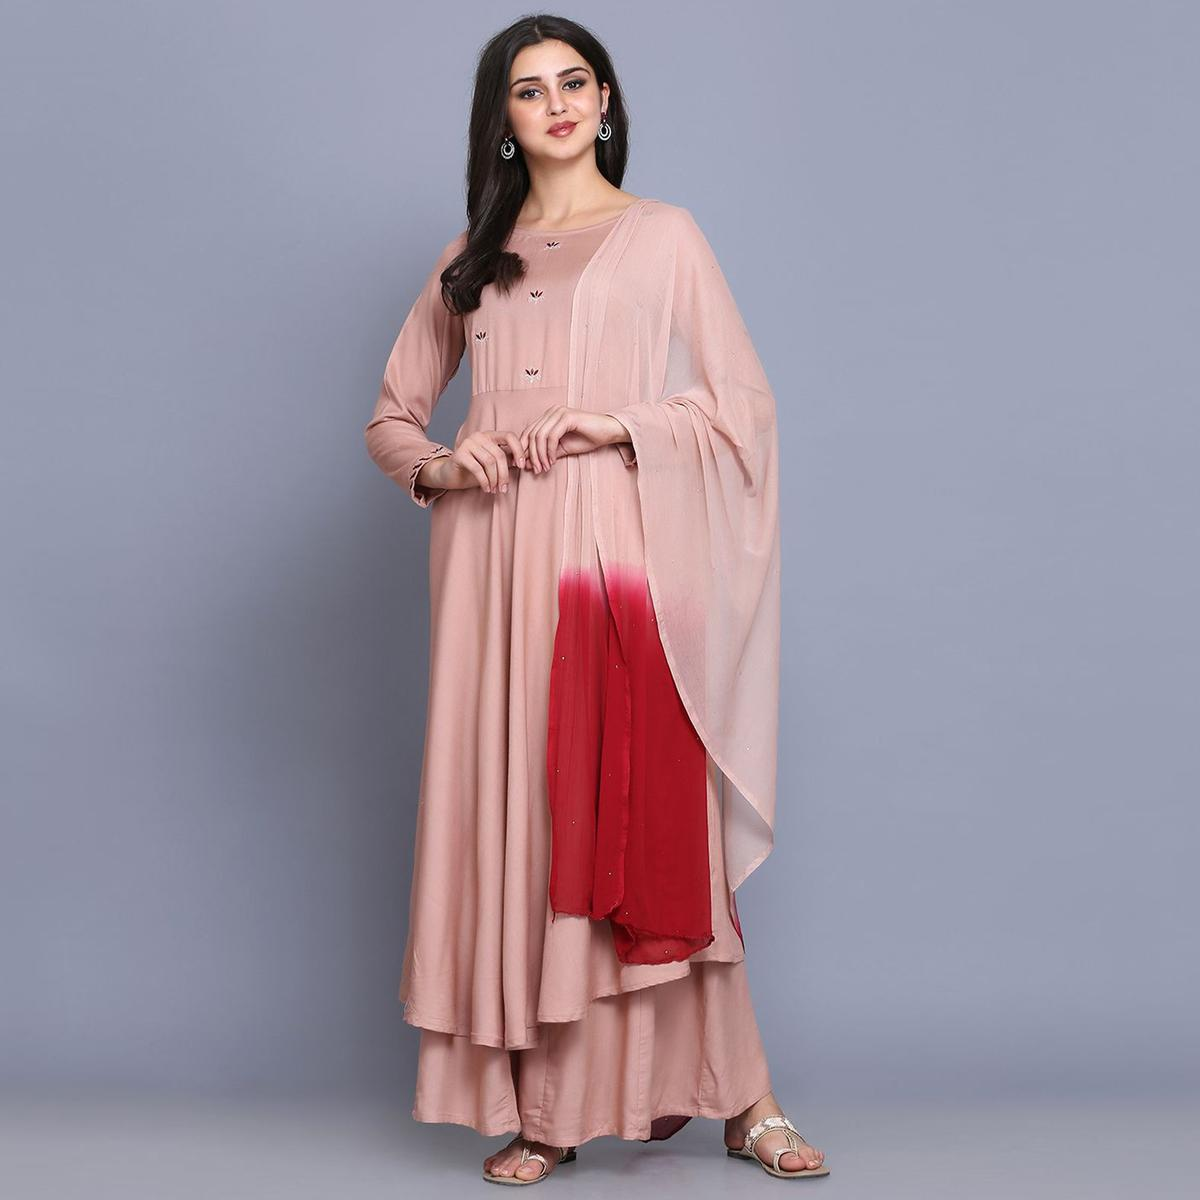 Refreshing Peach Colored Party Wear Embroidery Work Rayon Flared Kurti-Palazzo Set With Dupatta